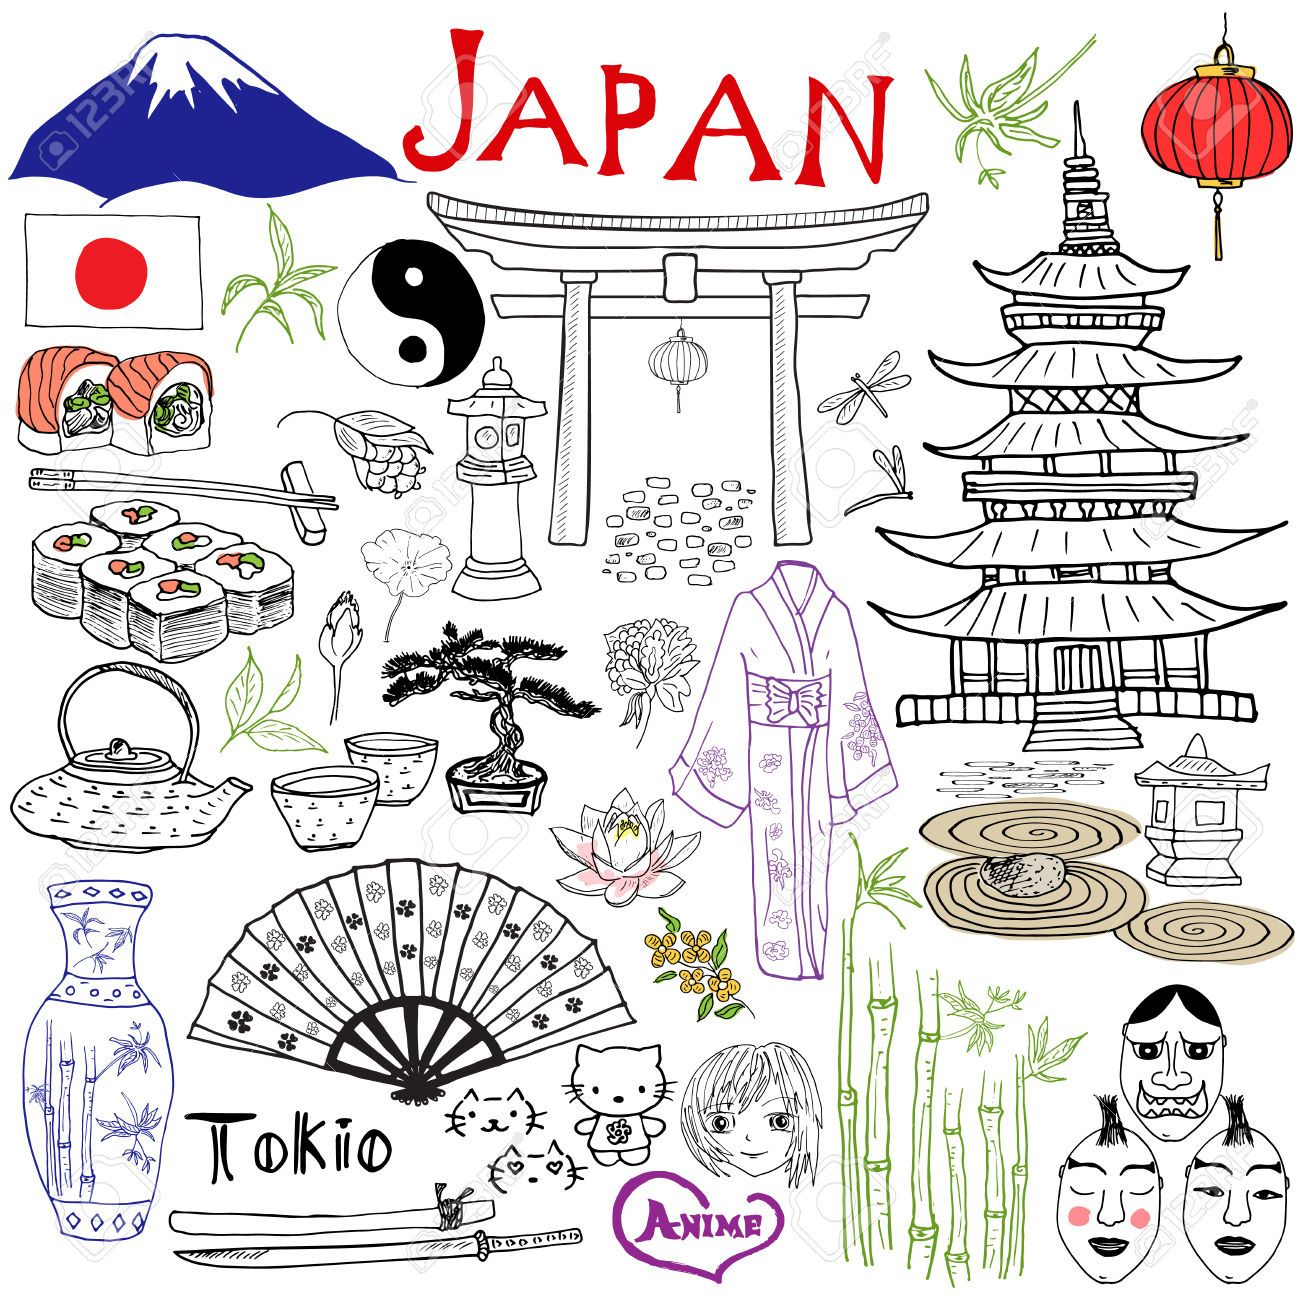 Japan Drawing Images, Stock Pictures, Royalty Free Japan